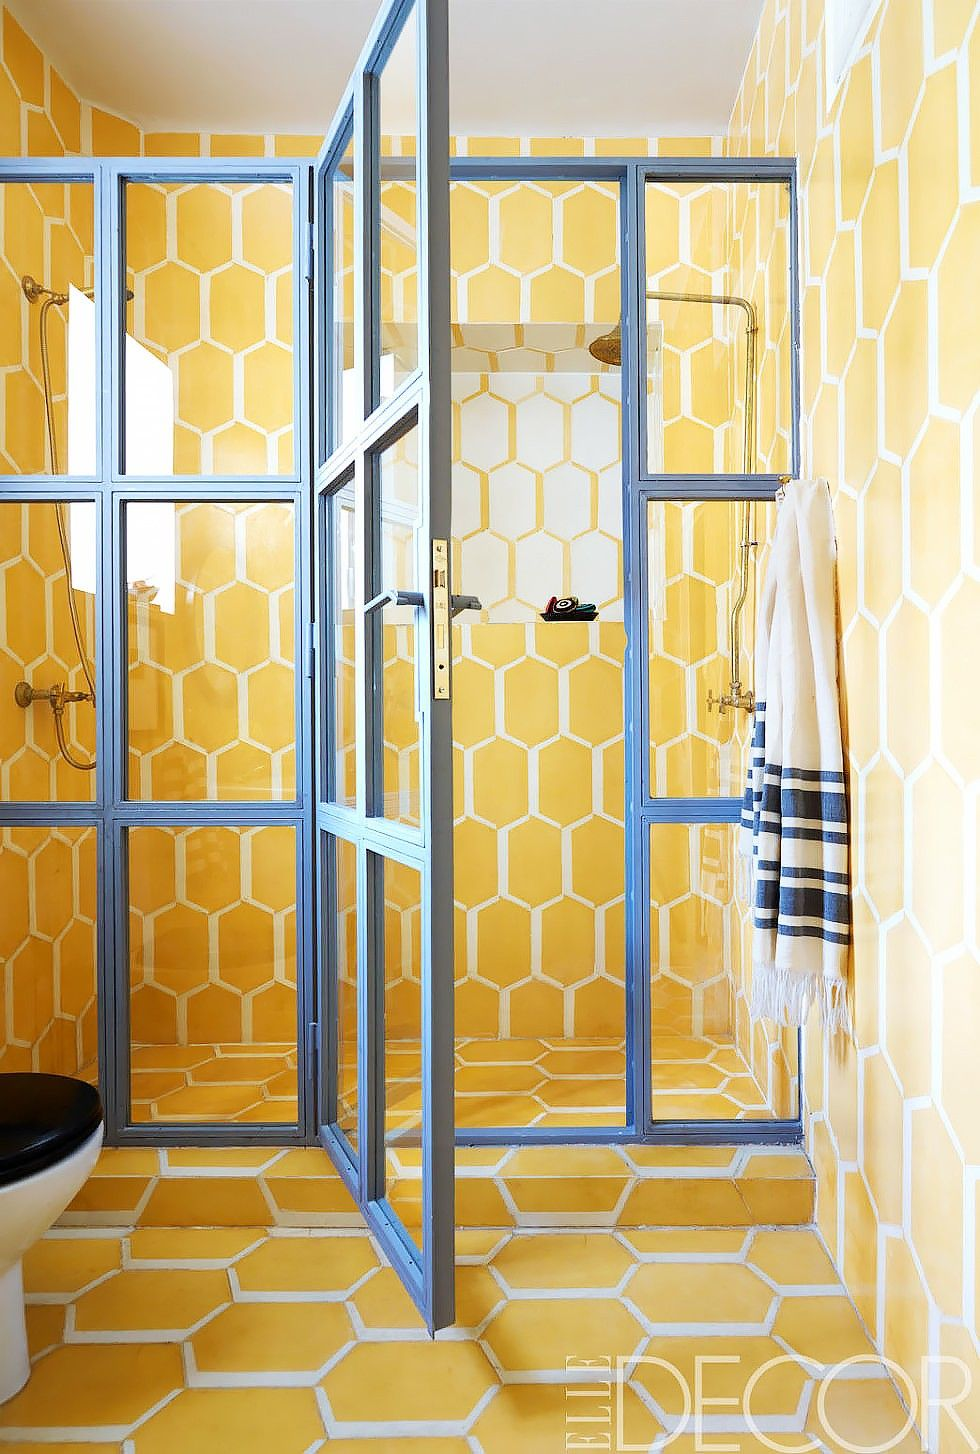 15 Tiny Bathrooms With Major Chic Factor | Bathrooms : Noelle Becker ...